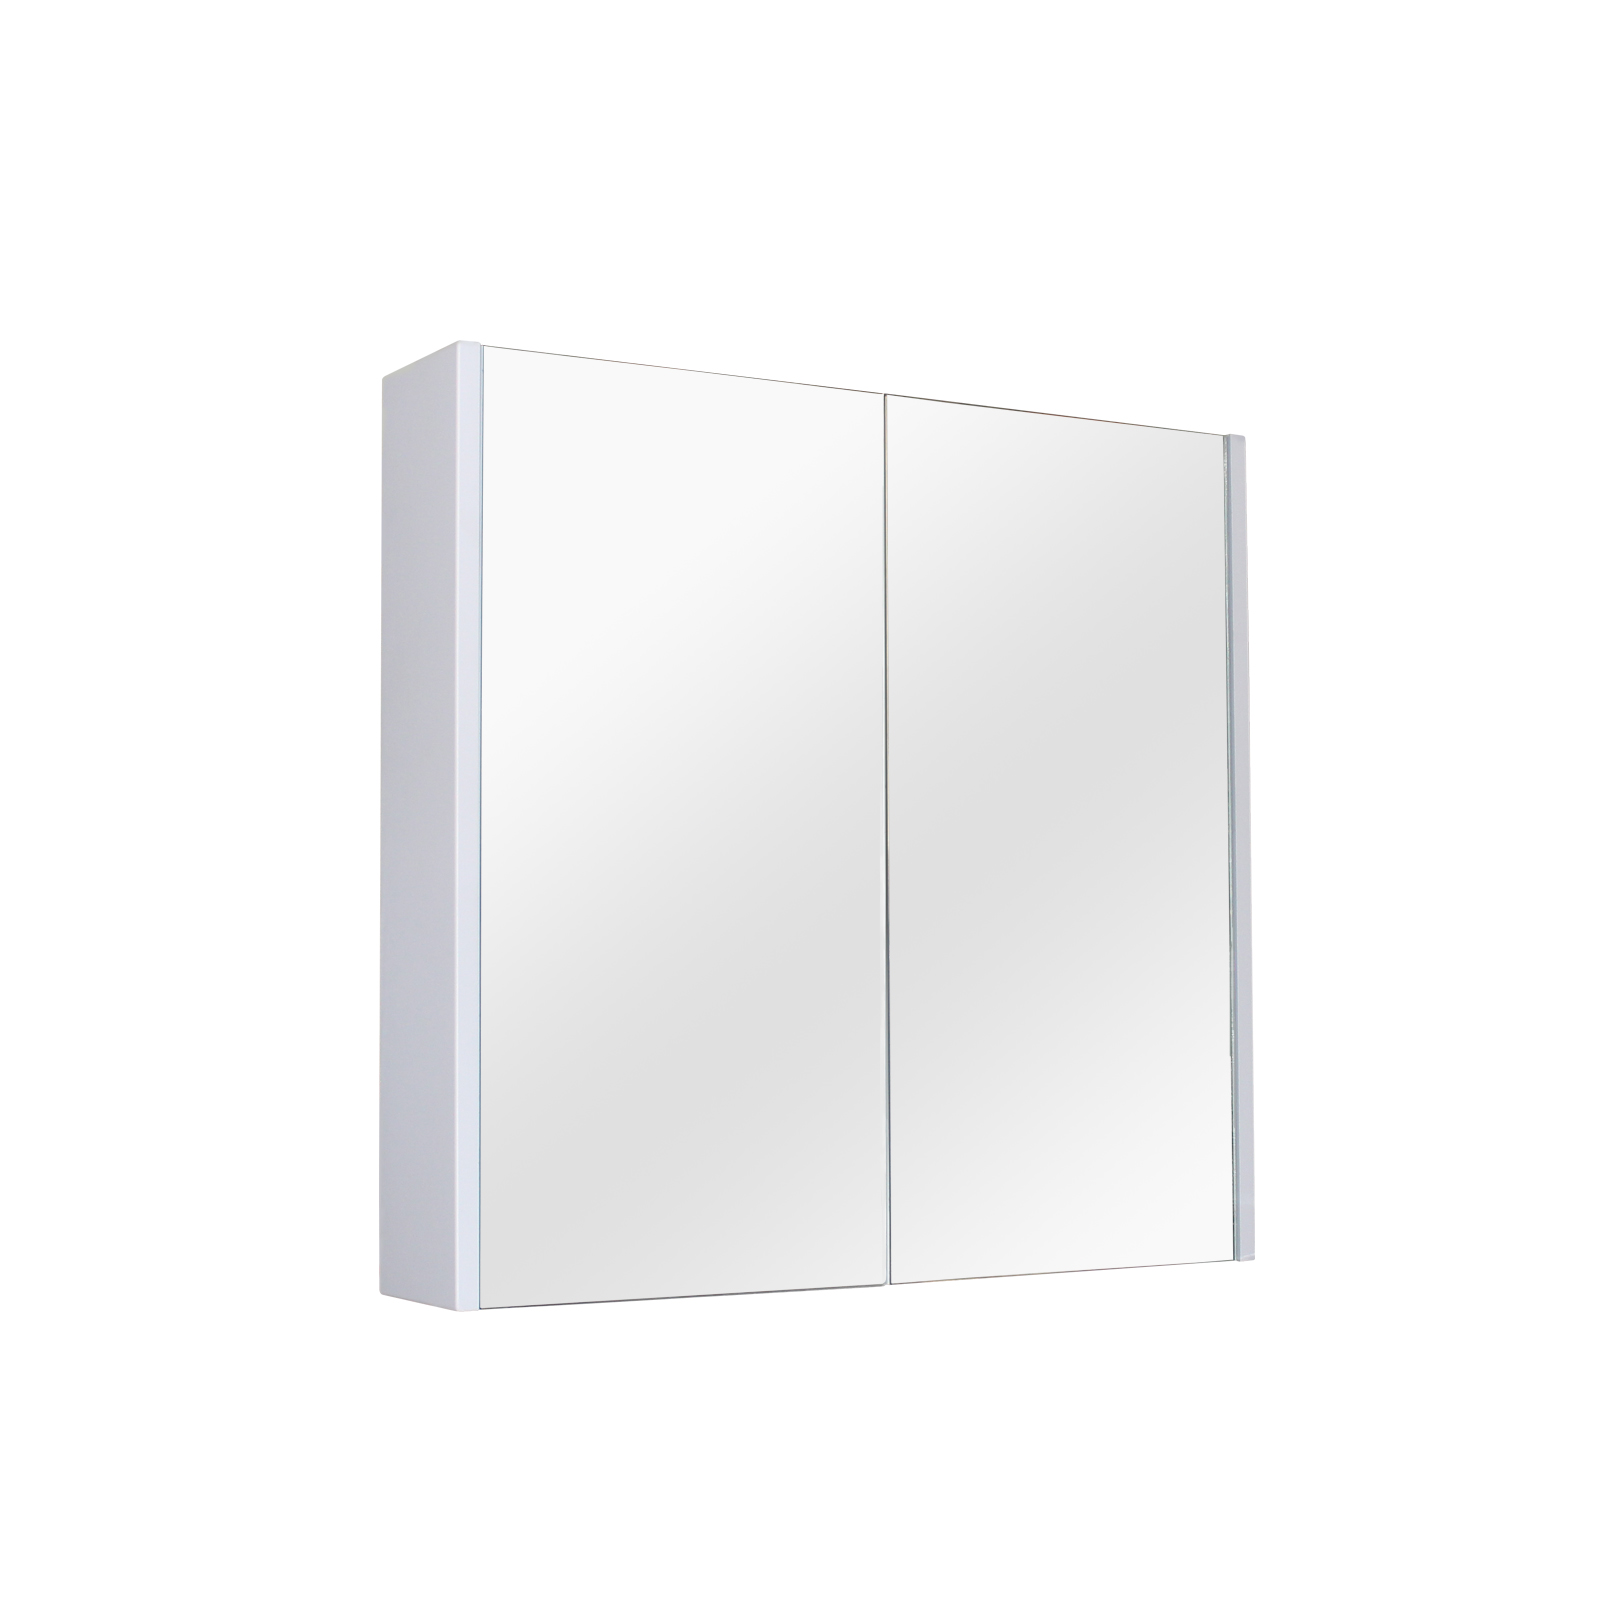 Paris 750 Shaving Cabinet - Matt White